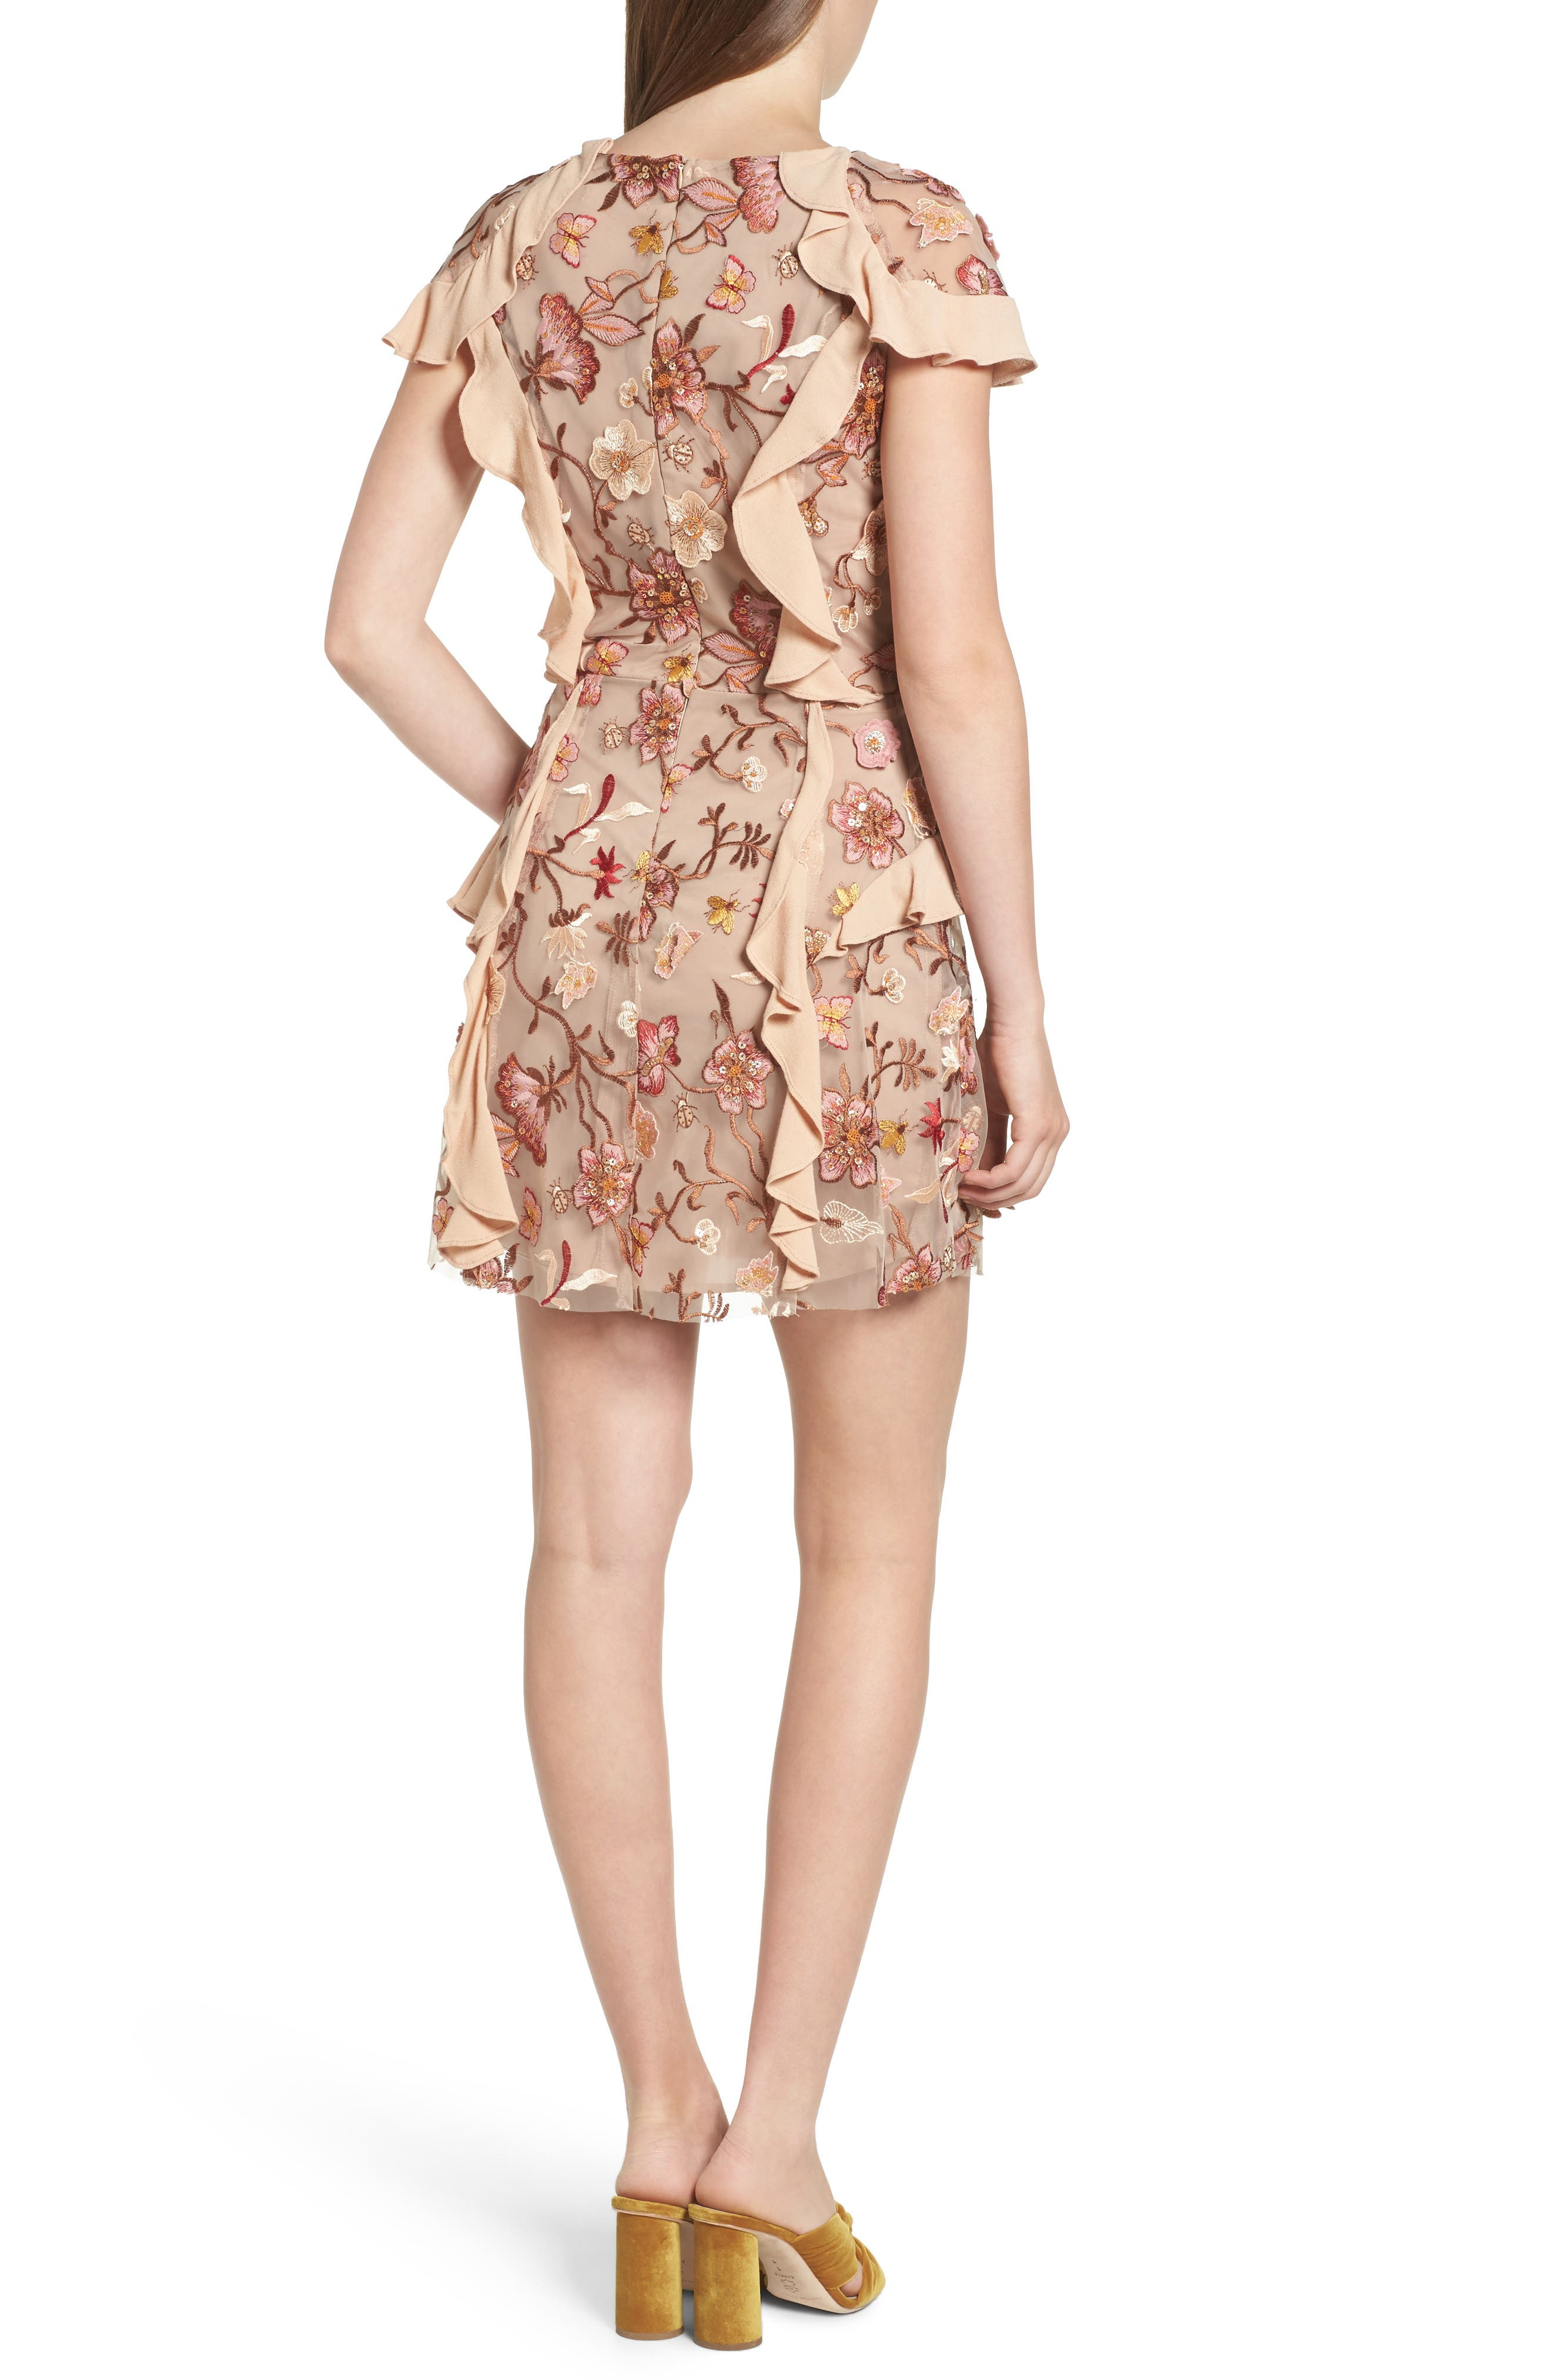 Botanical Embroidered Ruffle Minidress,                             Alternate thumbnail 2, color,                             Nude Floral